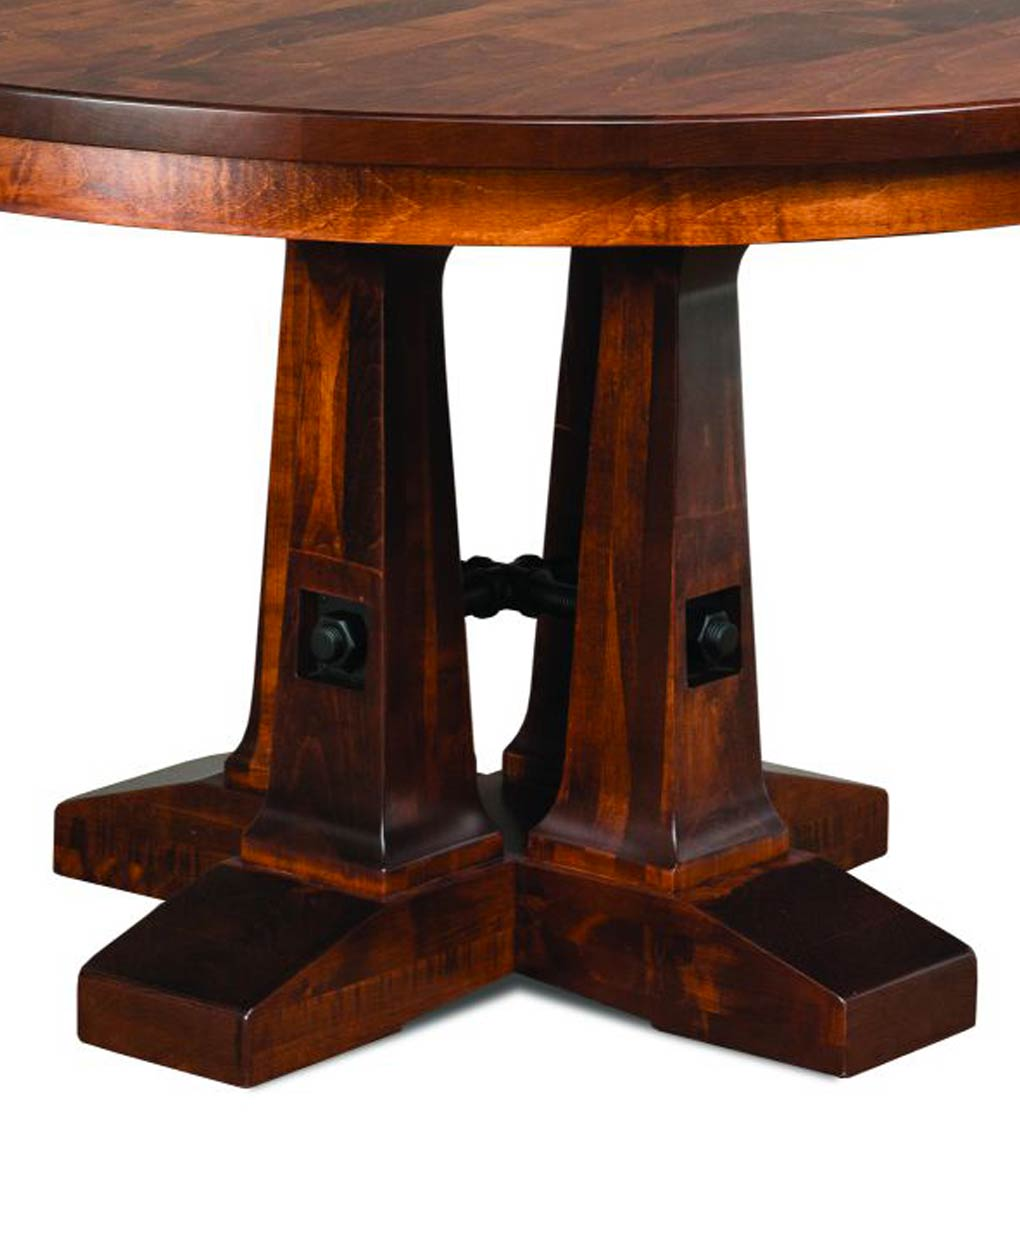 Round Dining Room Tables: Vienna Round Dining Table